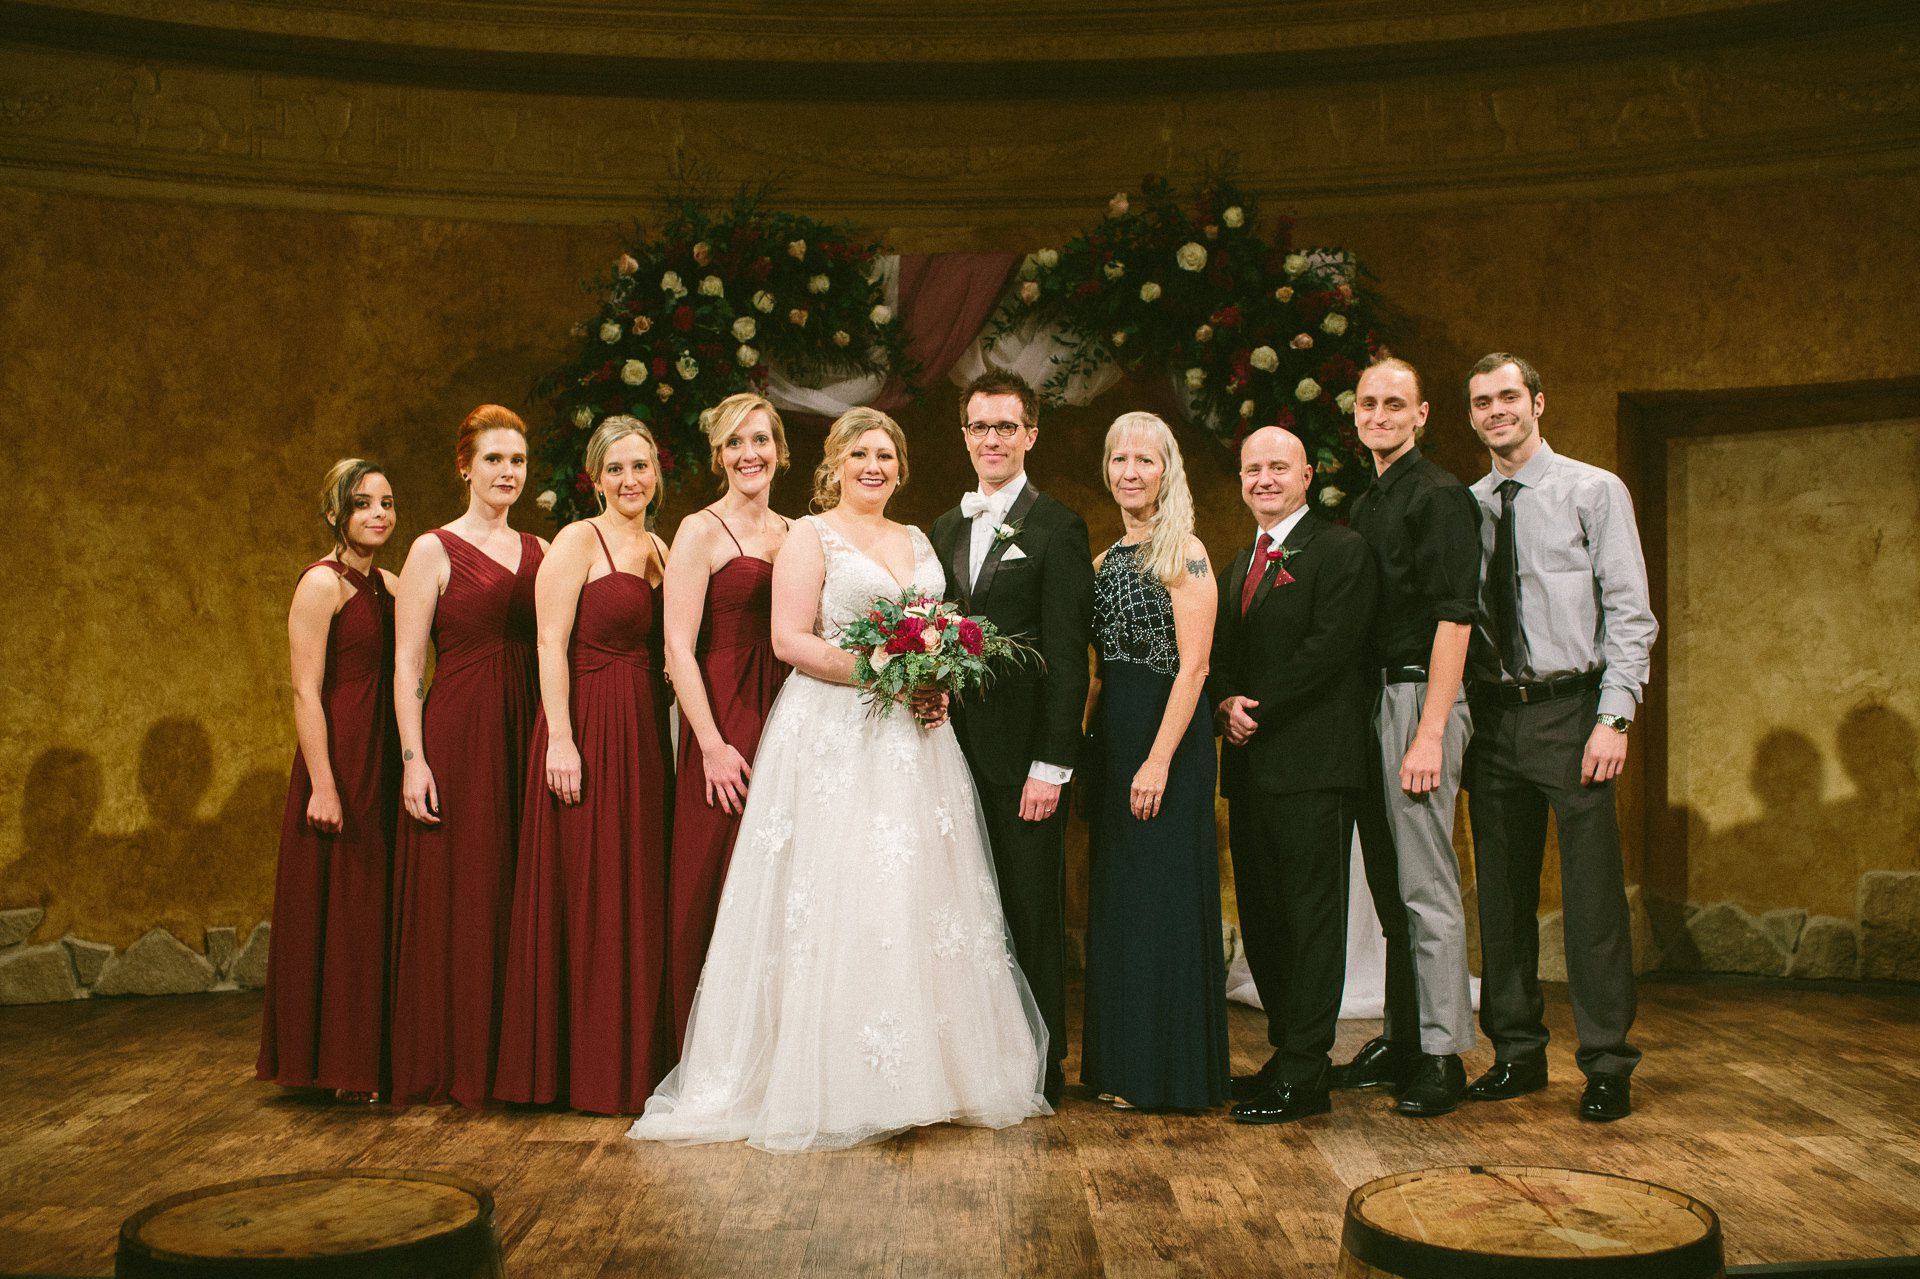 Cibreo Privato Wedding at Playhouse Square in Cleveland 2 9.jpg